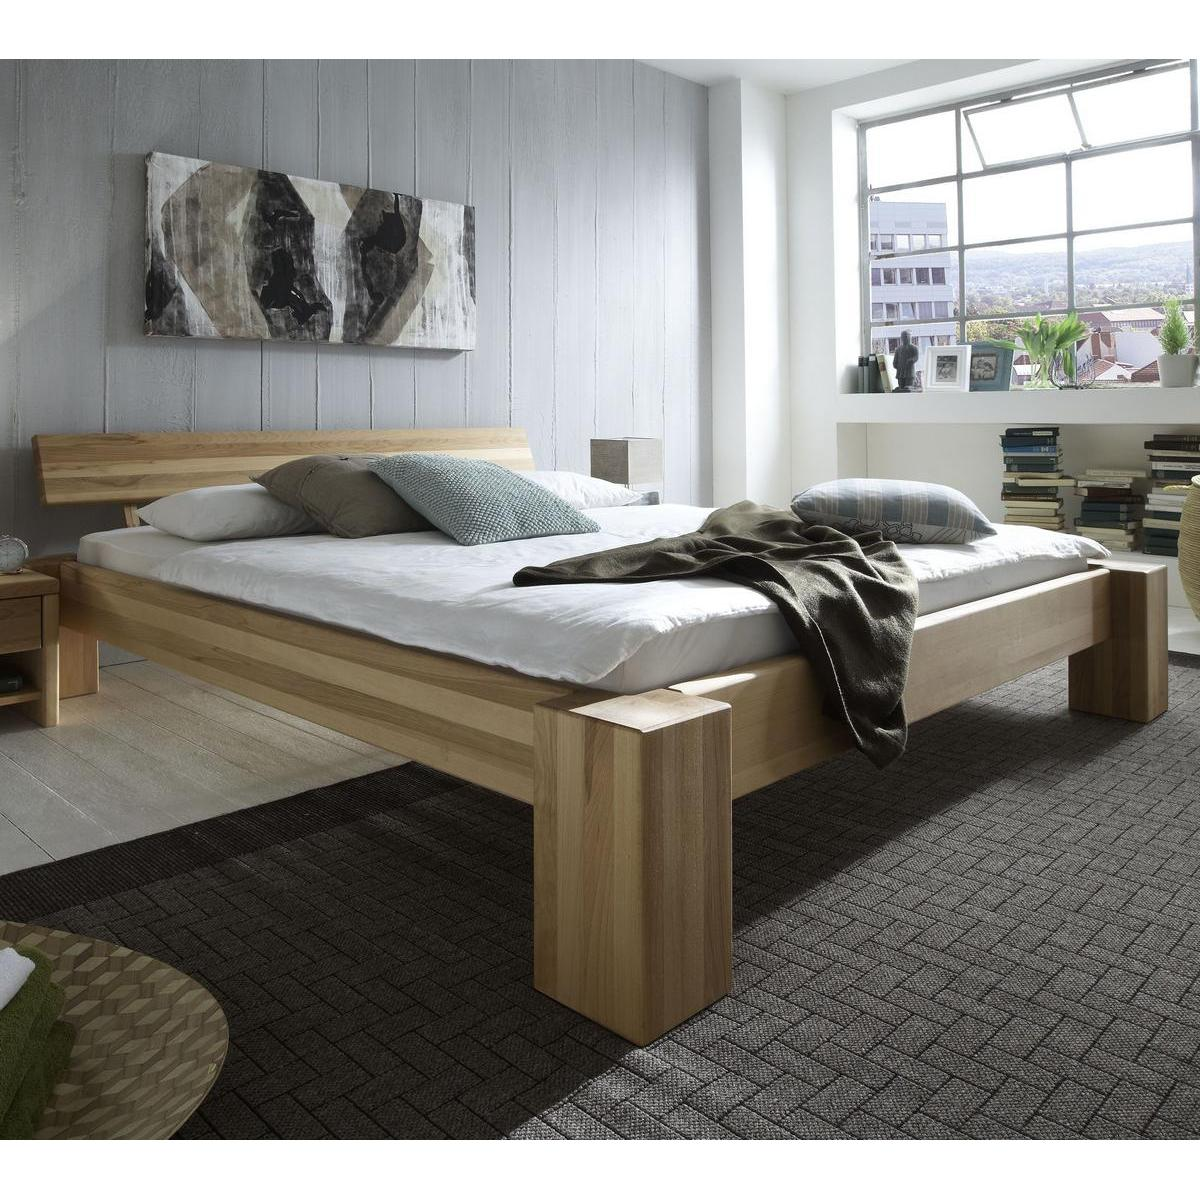 holzbett massiv 200 200. Black Bedroom Furniture Sets. Home Design Ideas